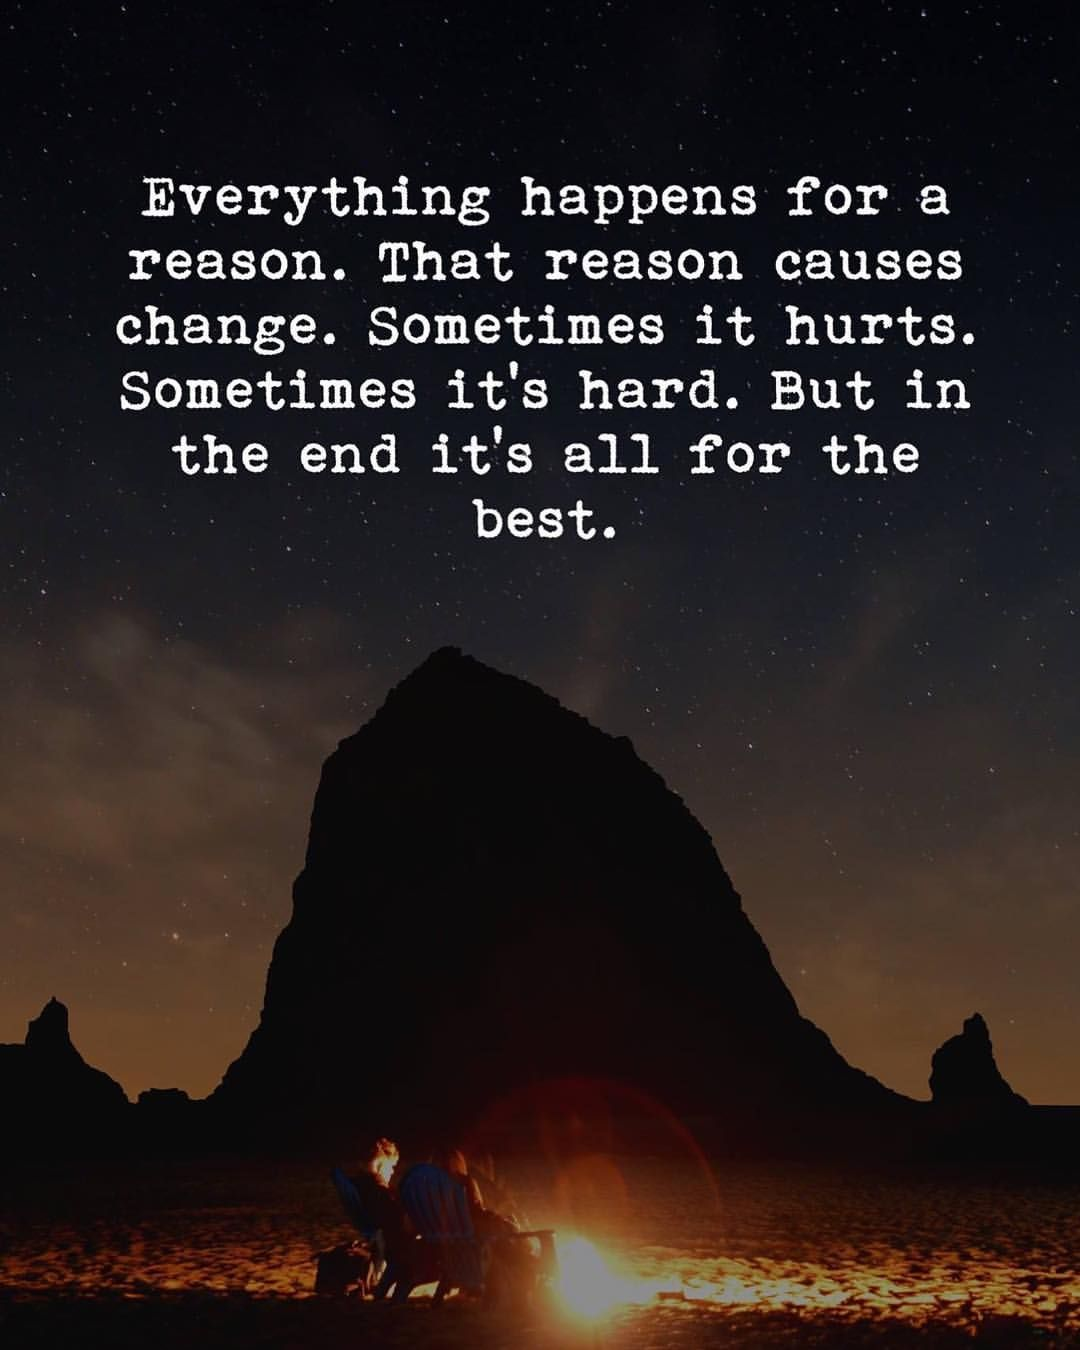 200 Everything Happens For A Reason Quote Motivational Quotes 2019